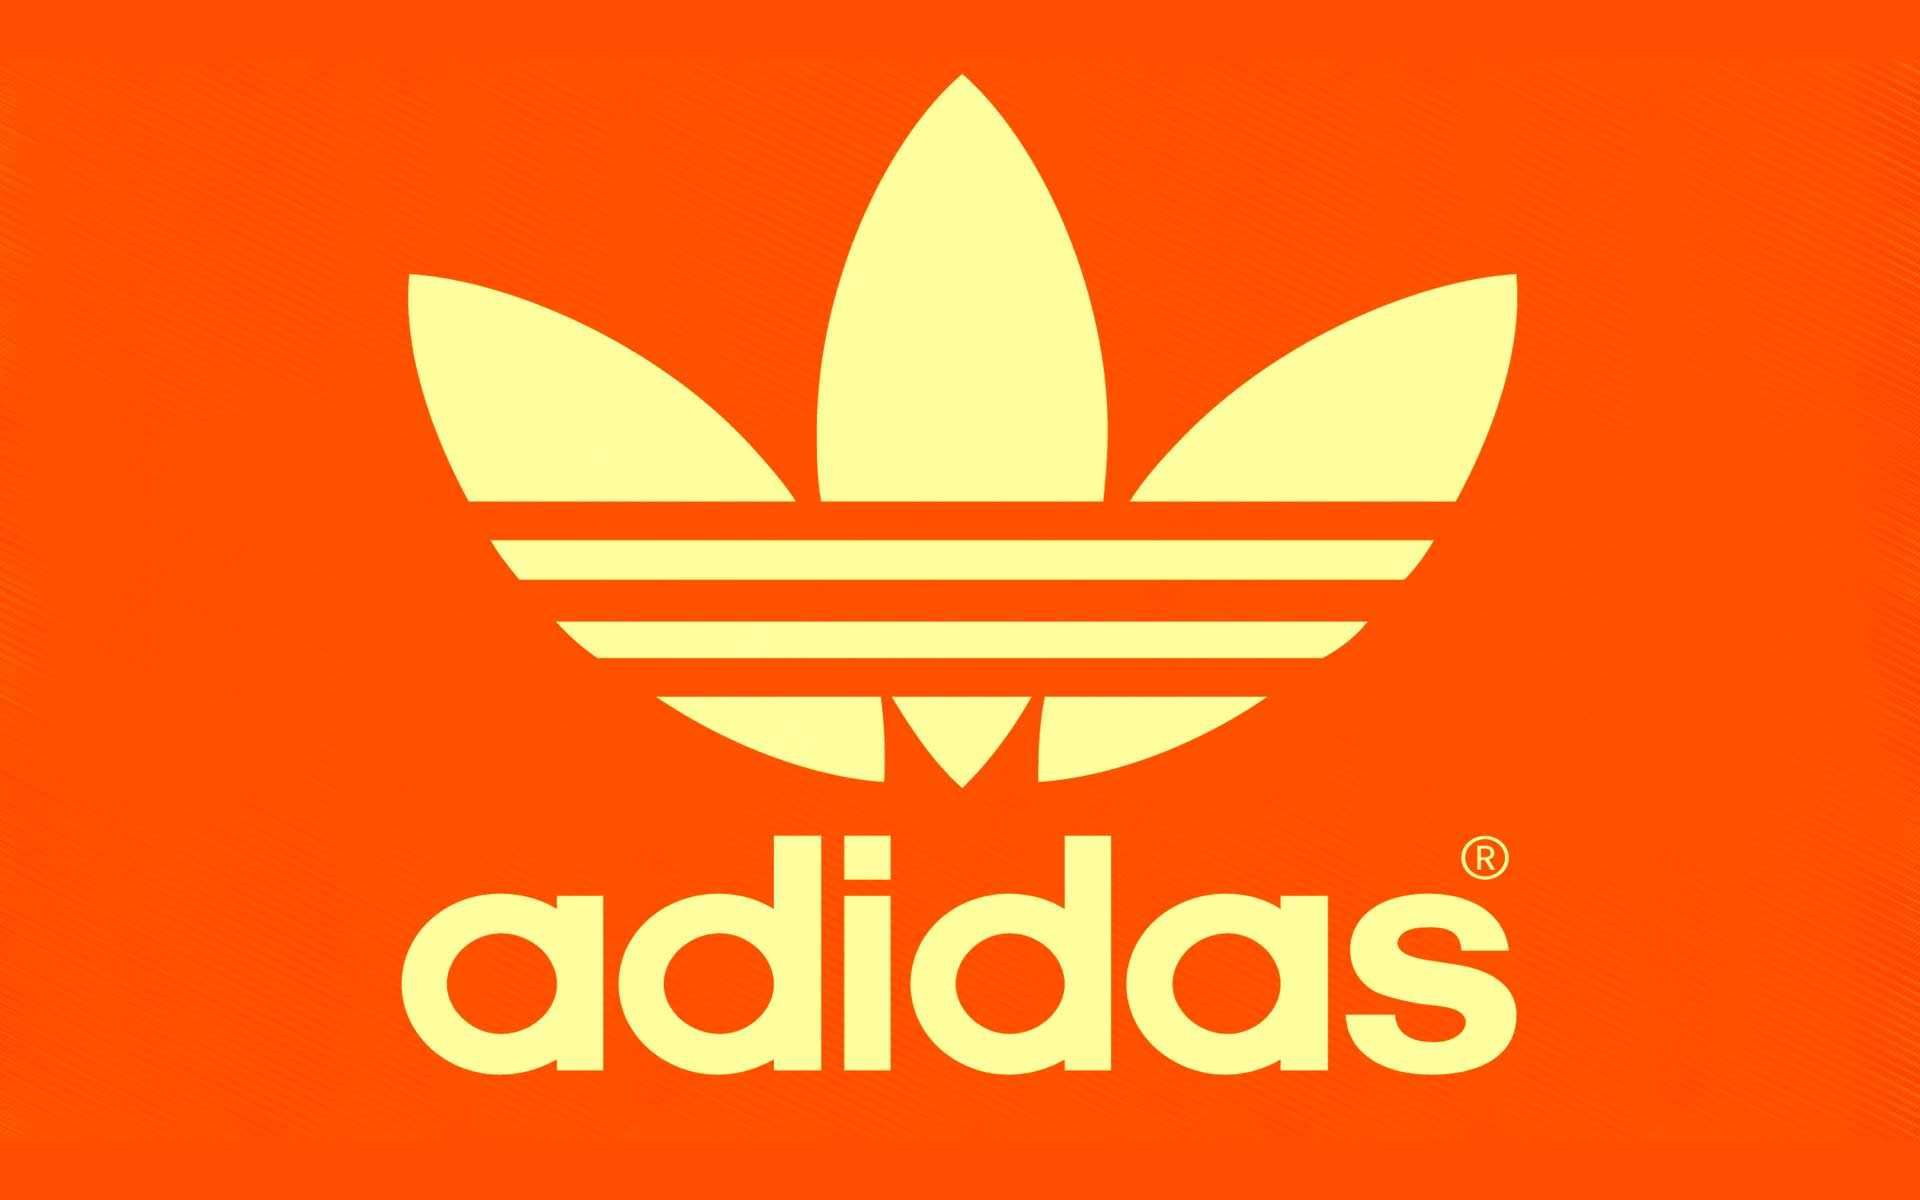 Adidas Originals Logo Wallpaper - Viewing Gallery. Download